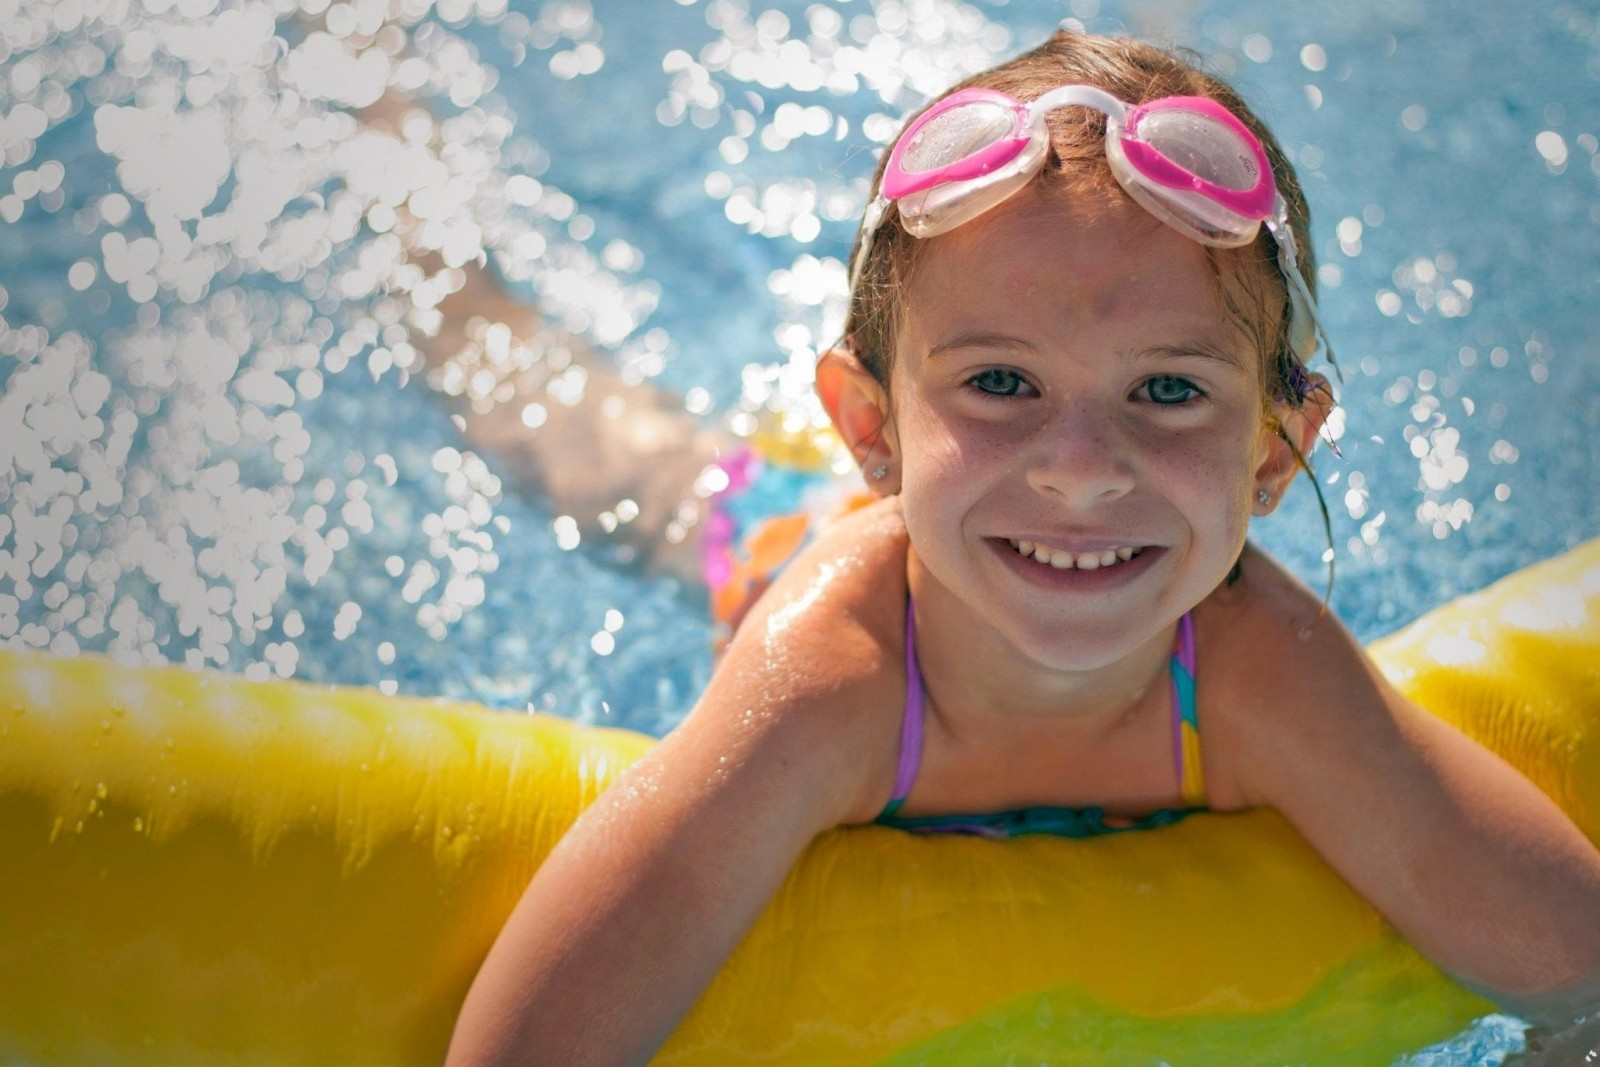 portrait-of-girl-smiling-and-swimming-in-pool.jpg